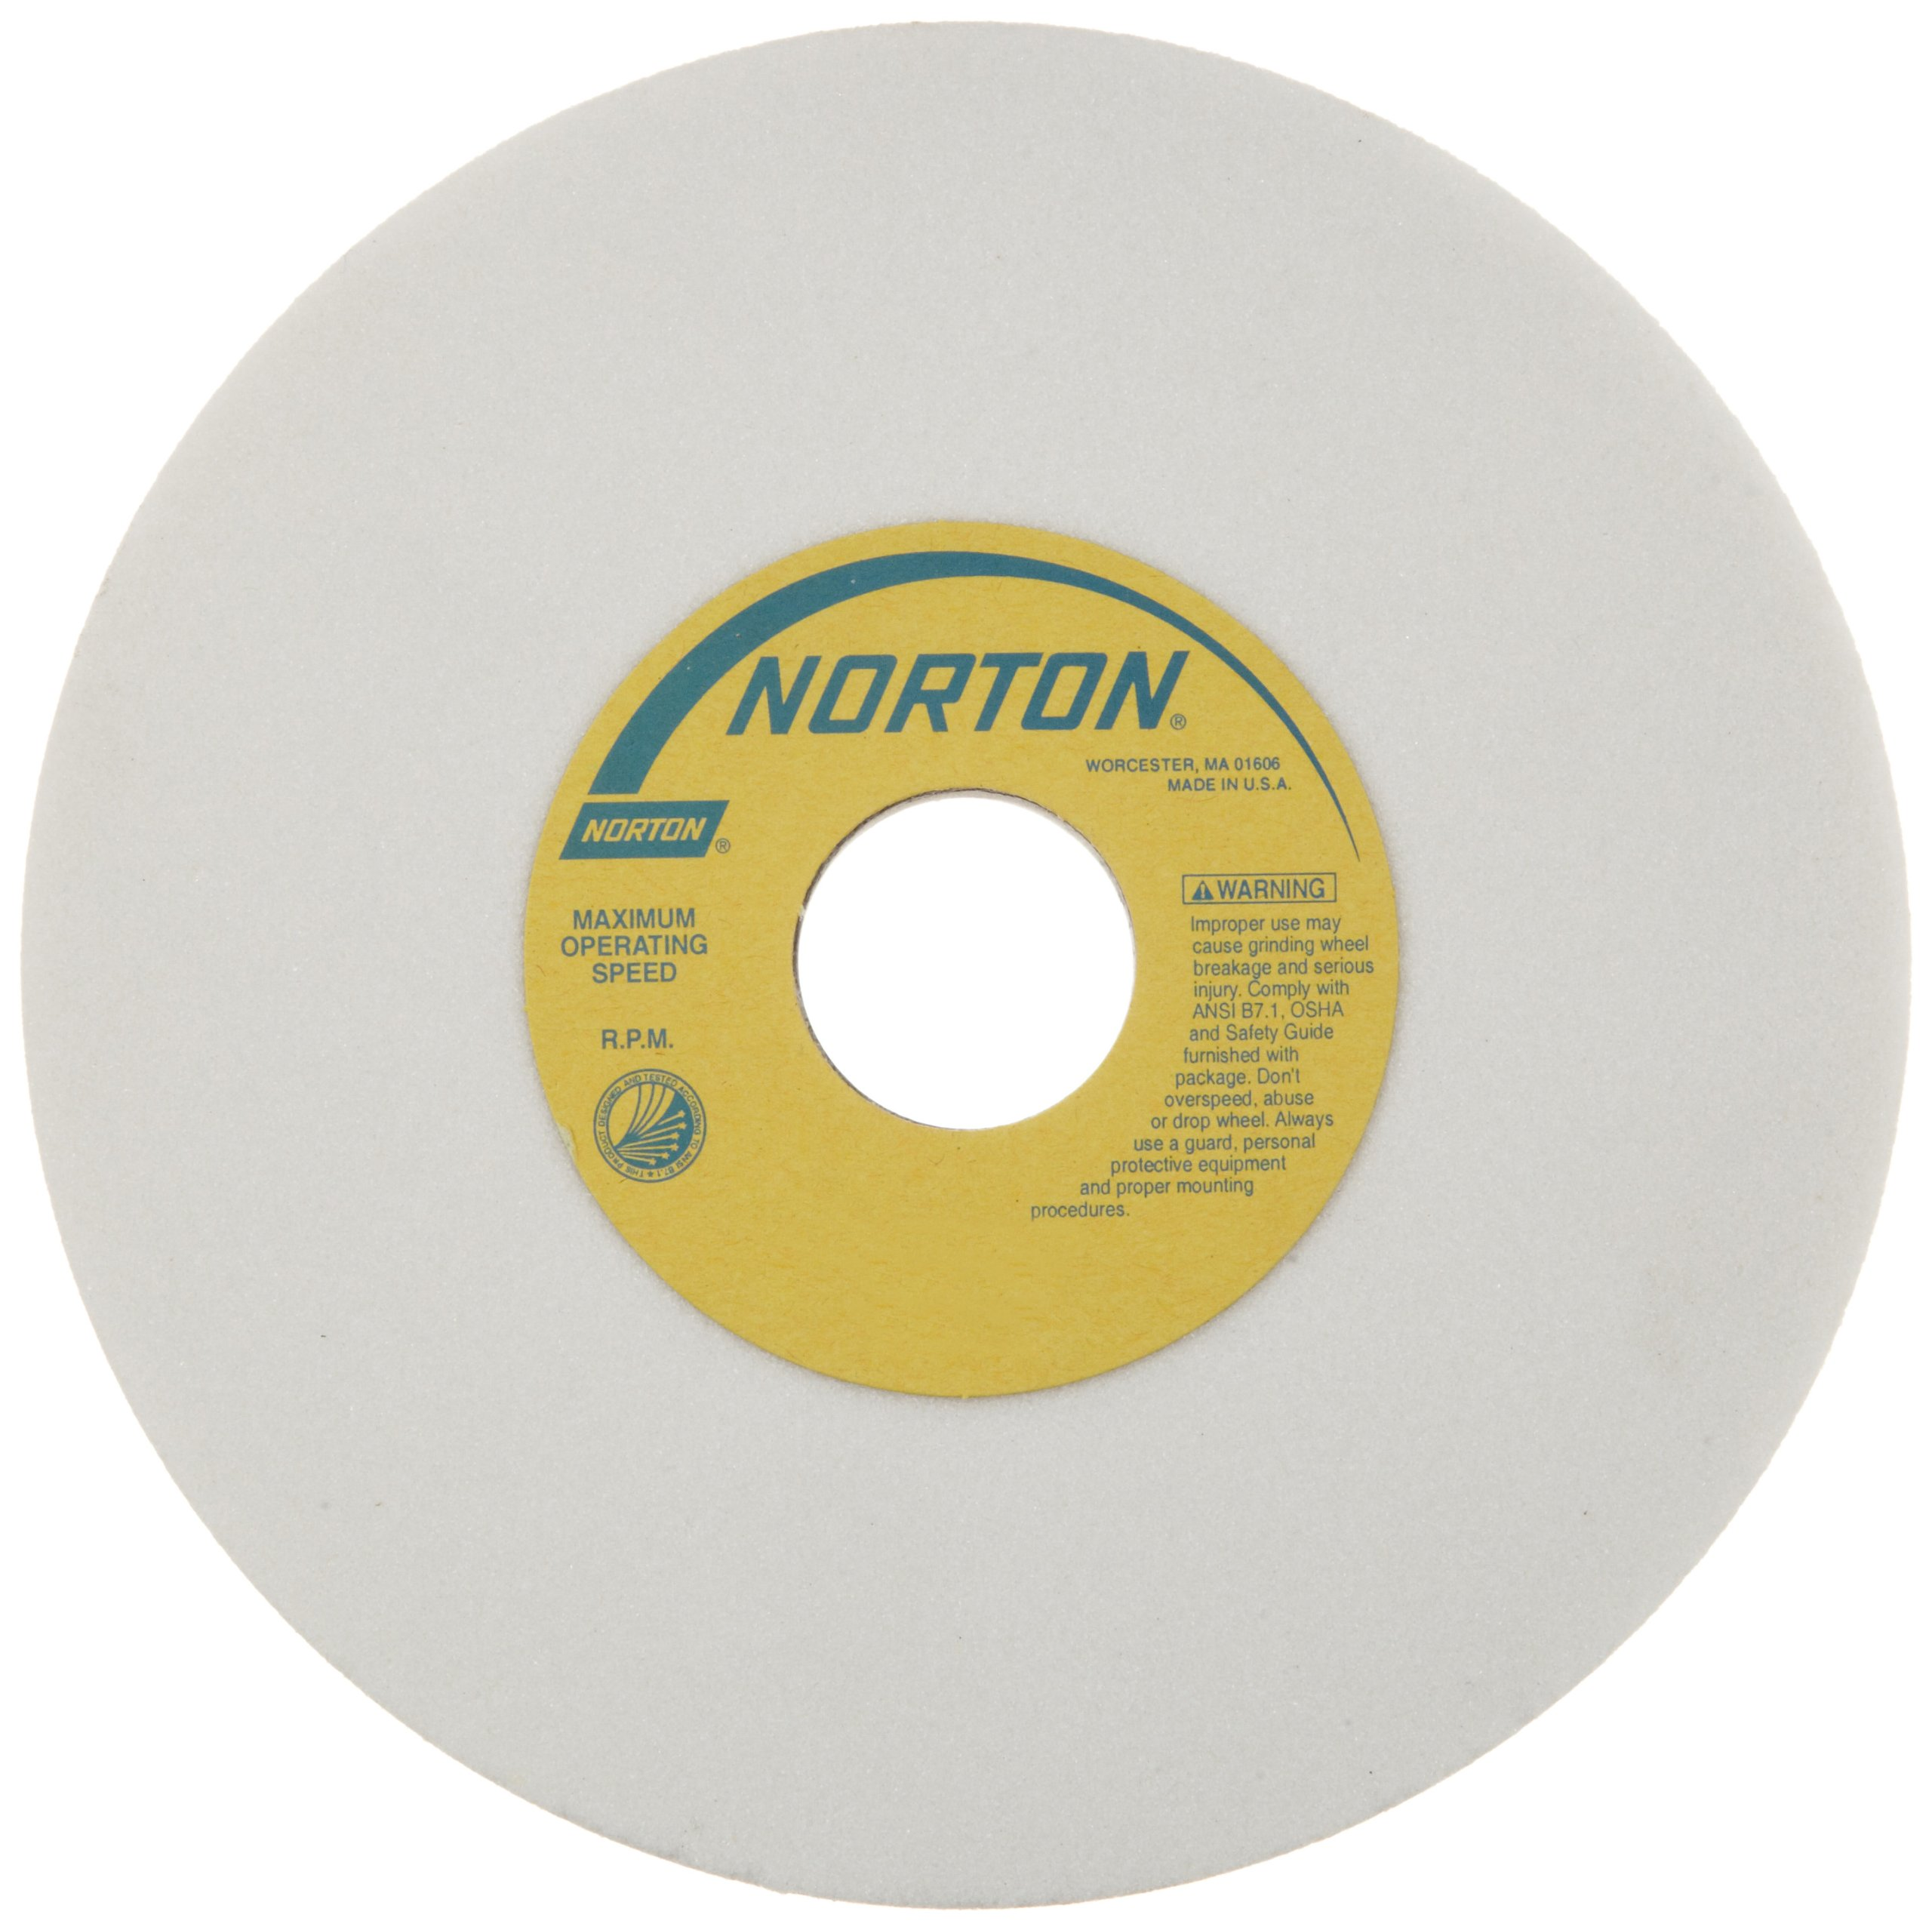 Norton 38A Vitrified Toolroom Abrasive Wheel, Type 1 Straight, Aluminum Oxide, 1-1/4'' Arbor, 7'' Diameter, 1/2'' Thickness, 60-I Grit (Pack of 1)